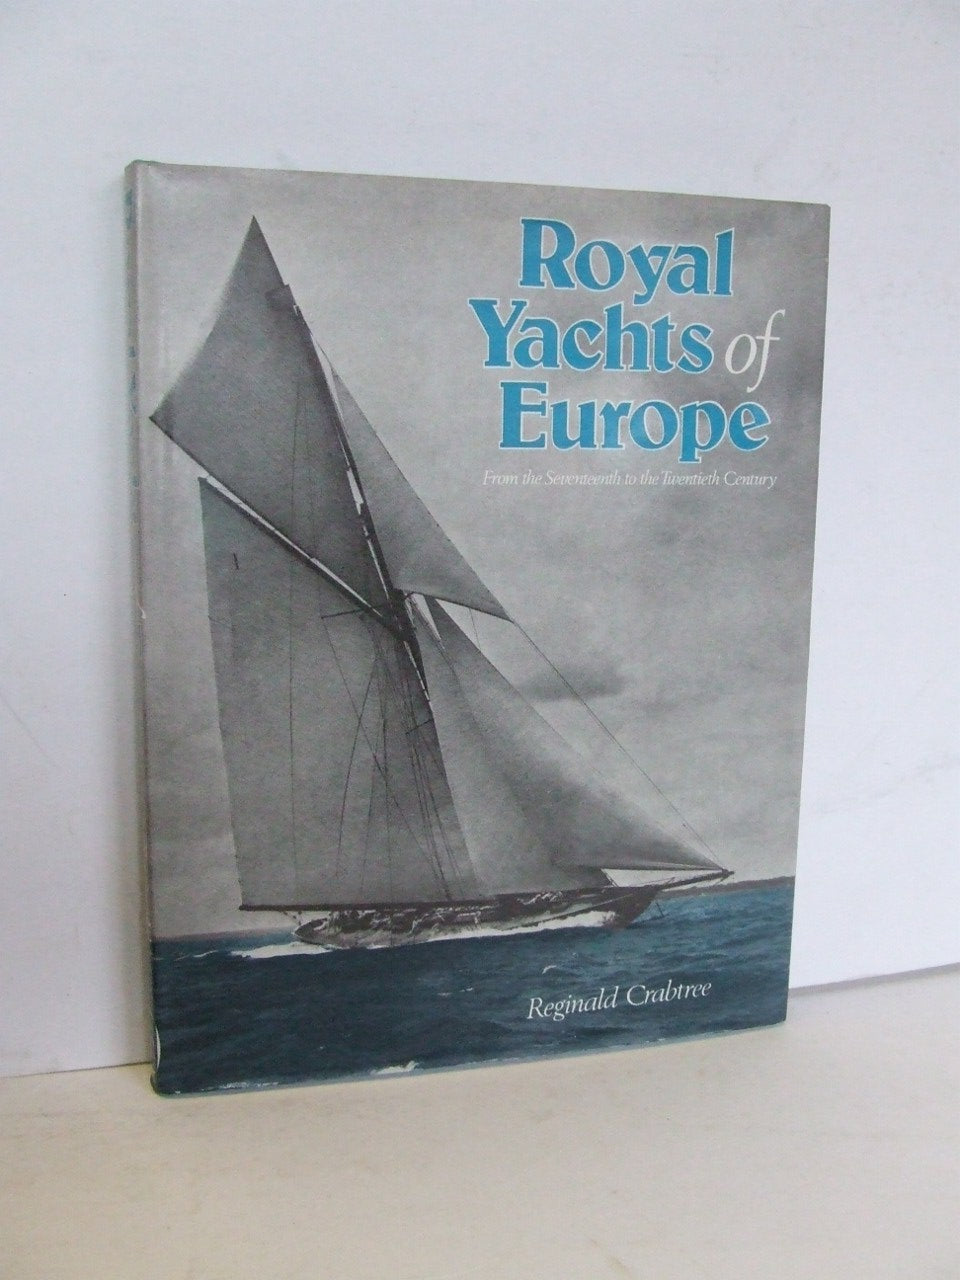 Royal Yachts of Europe from the 17th to the 20th centuries